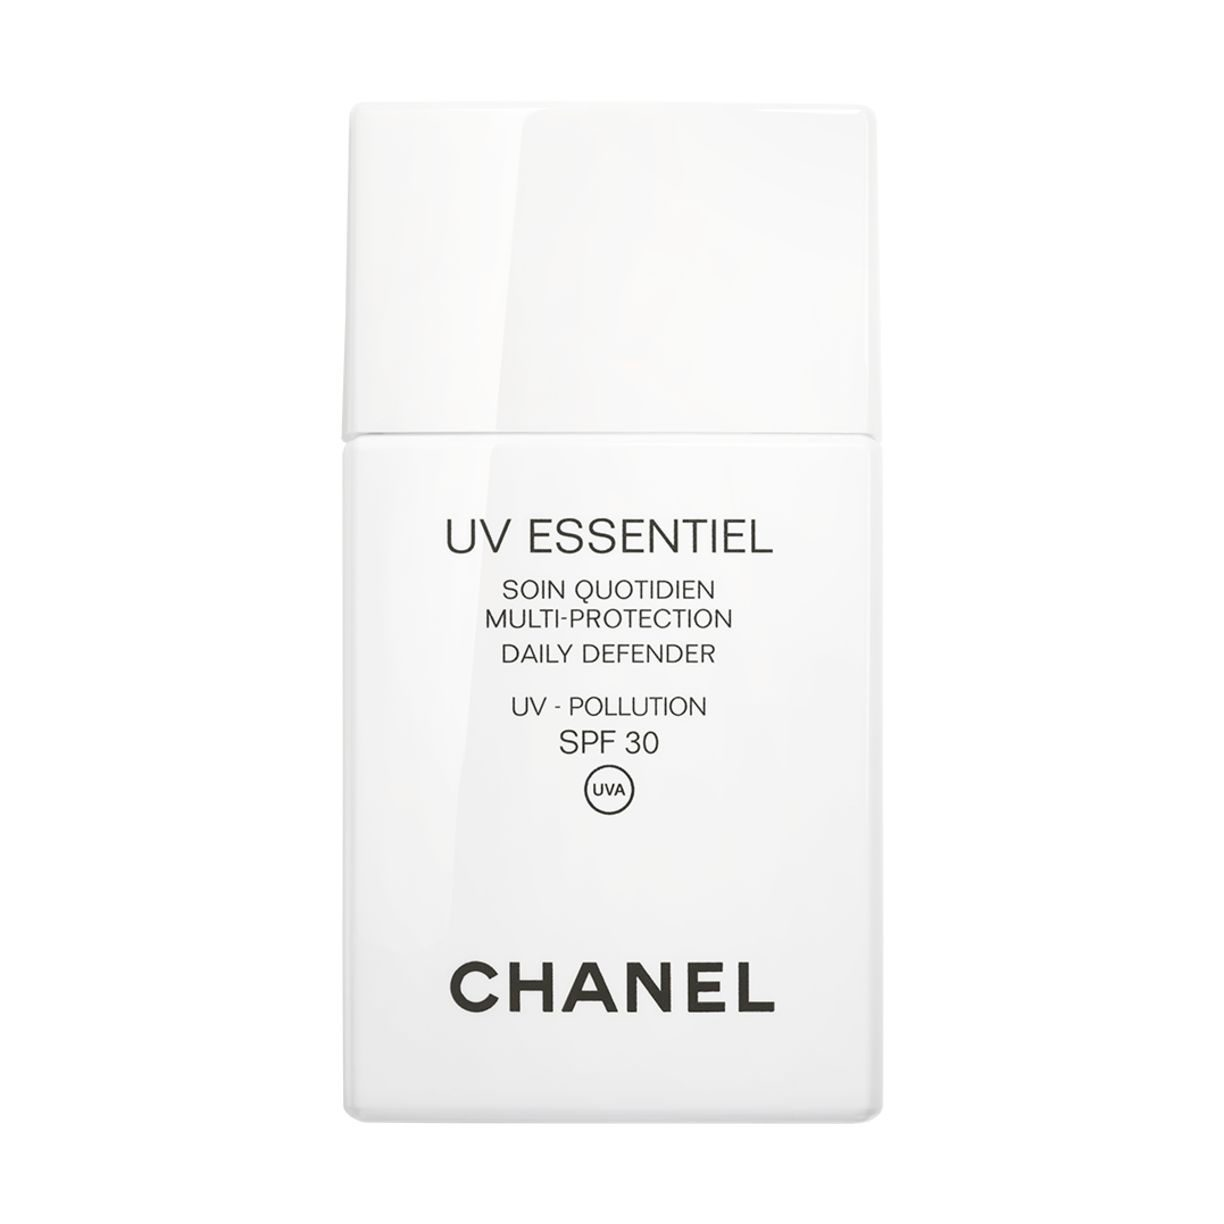 UV ESSENTIEL MULTI-PROTECTION DAILY DEFENDER UV - POLLUTION SPF 30 30ml